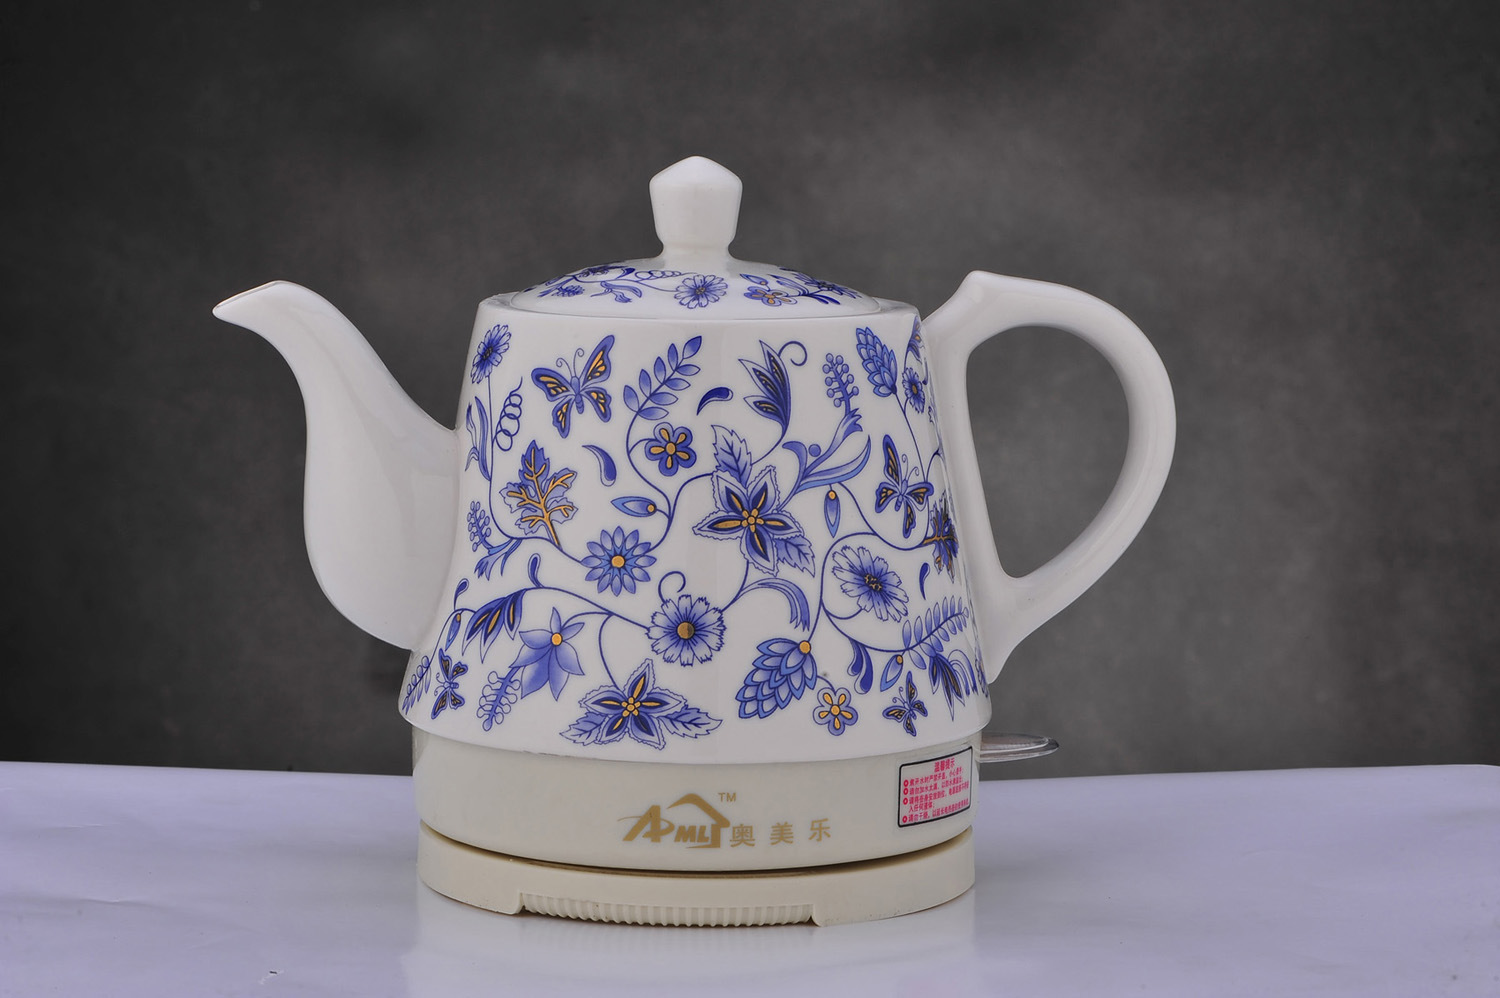 Porcelain Electric Kettle ~ Ceramic electric kettle ml a china